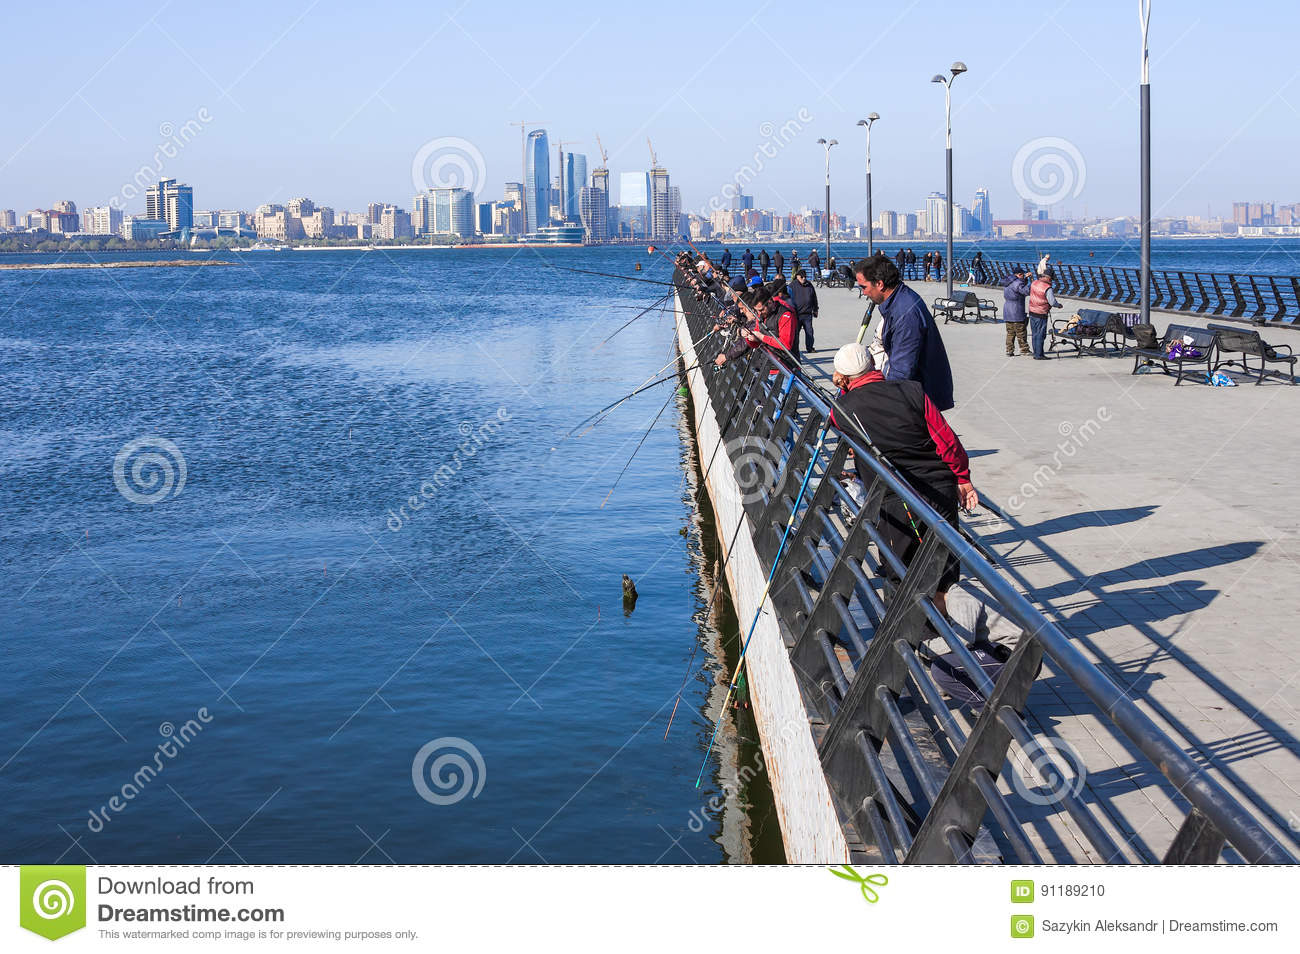 Seaside Park, Baku, Azerbaijan - April 17, 2017. A group of anglers are fishing in the Caspian Sea from the pier.